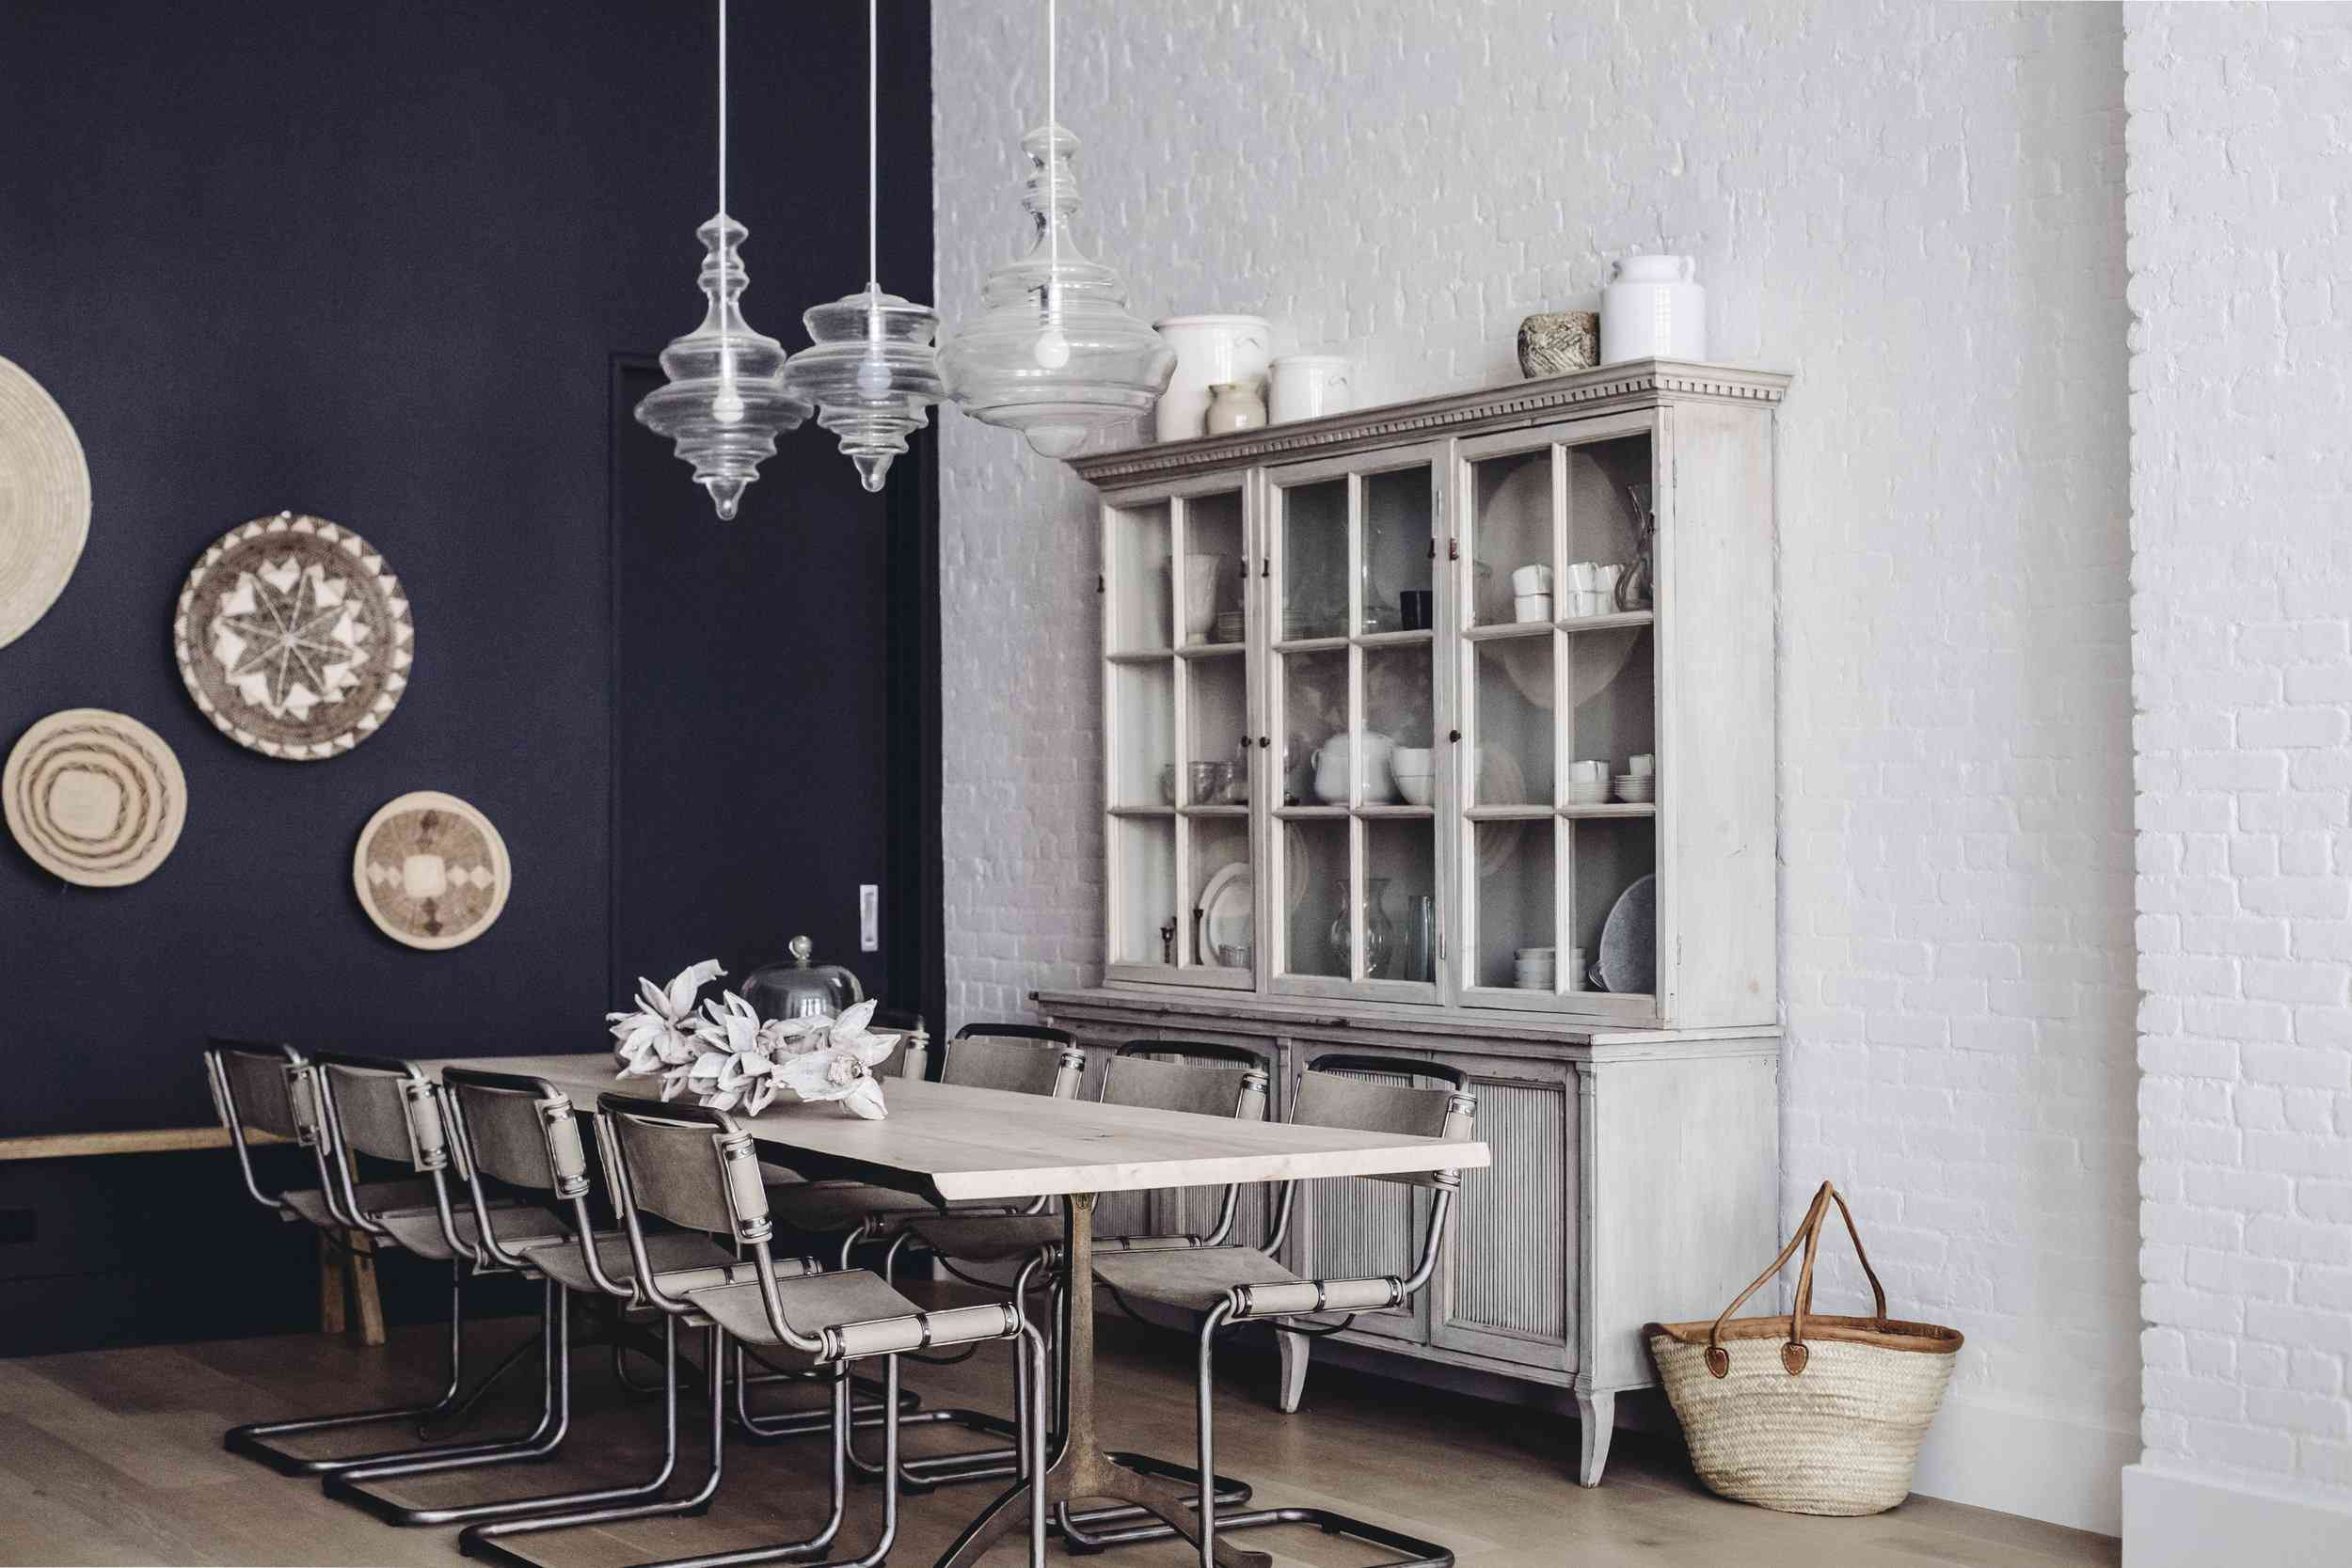 A beige-furniture-filled dining room with one white wall and one dark navy wall